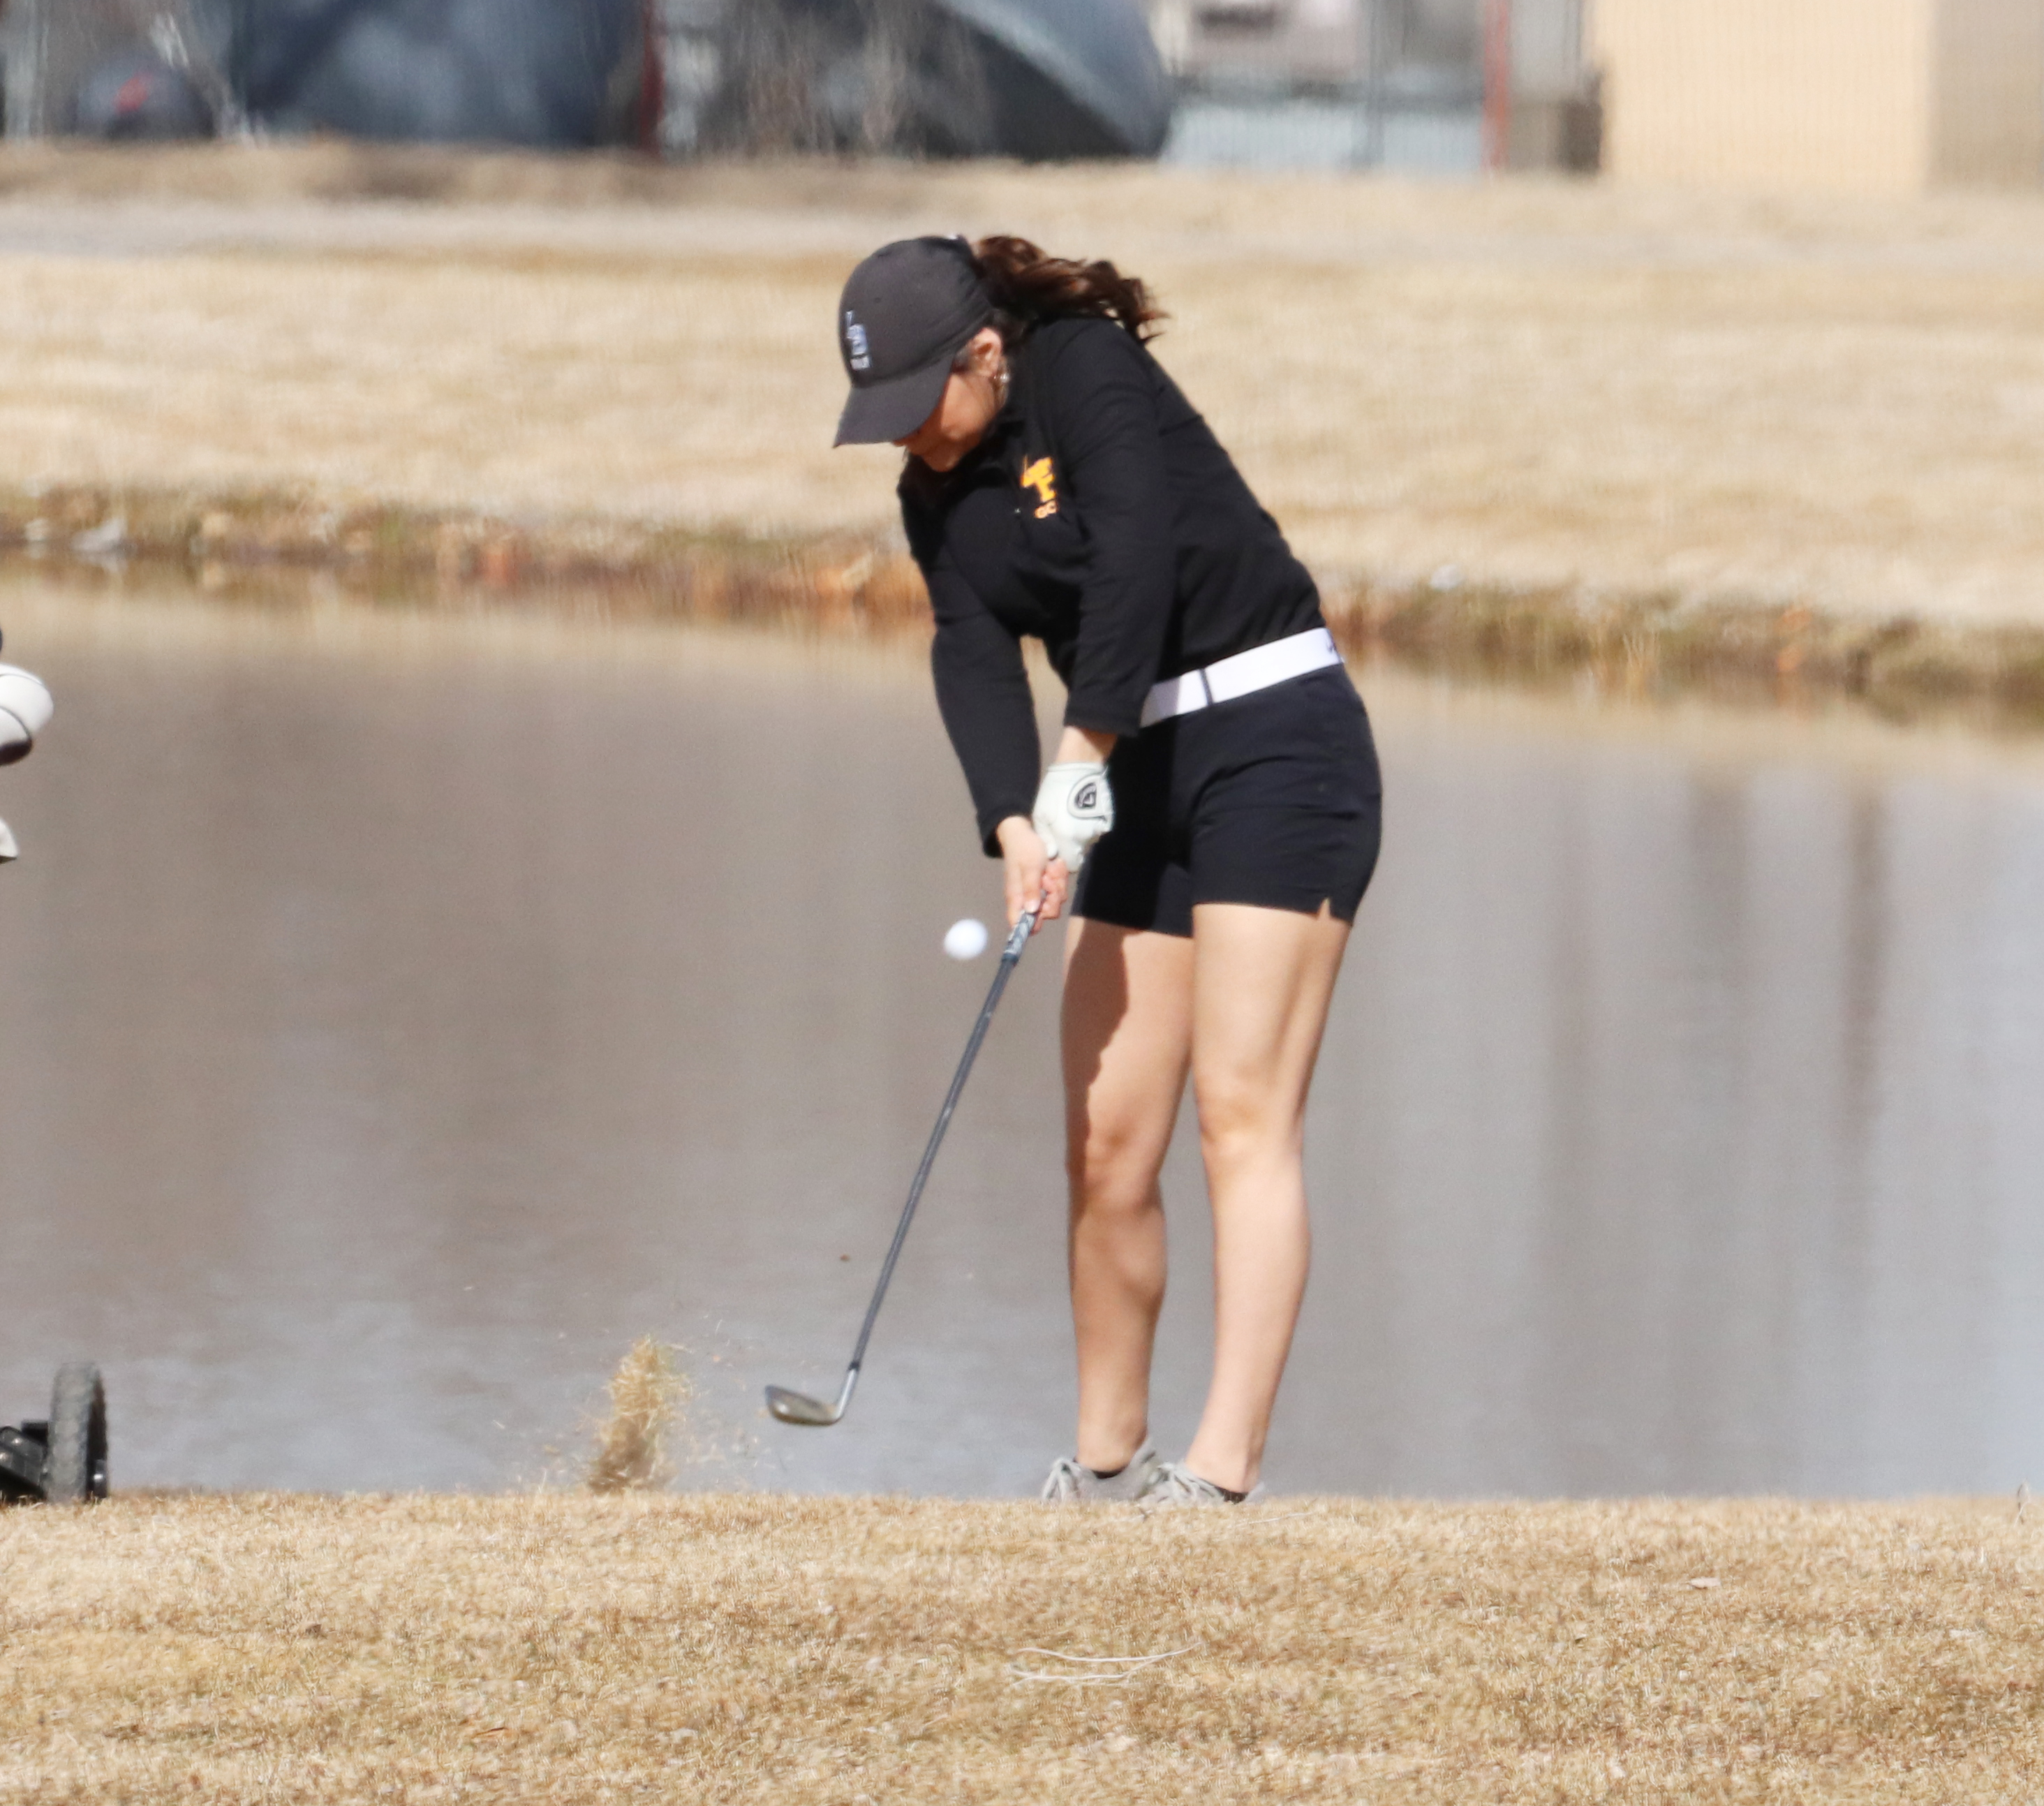 Angelina Martinez recovers after her ball landed near a water hazard. /Ron Espinola • The Brand